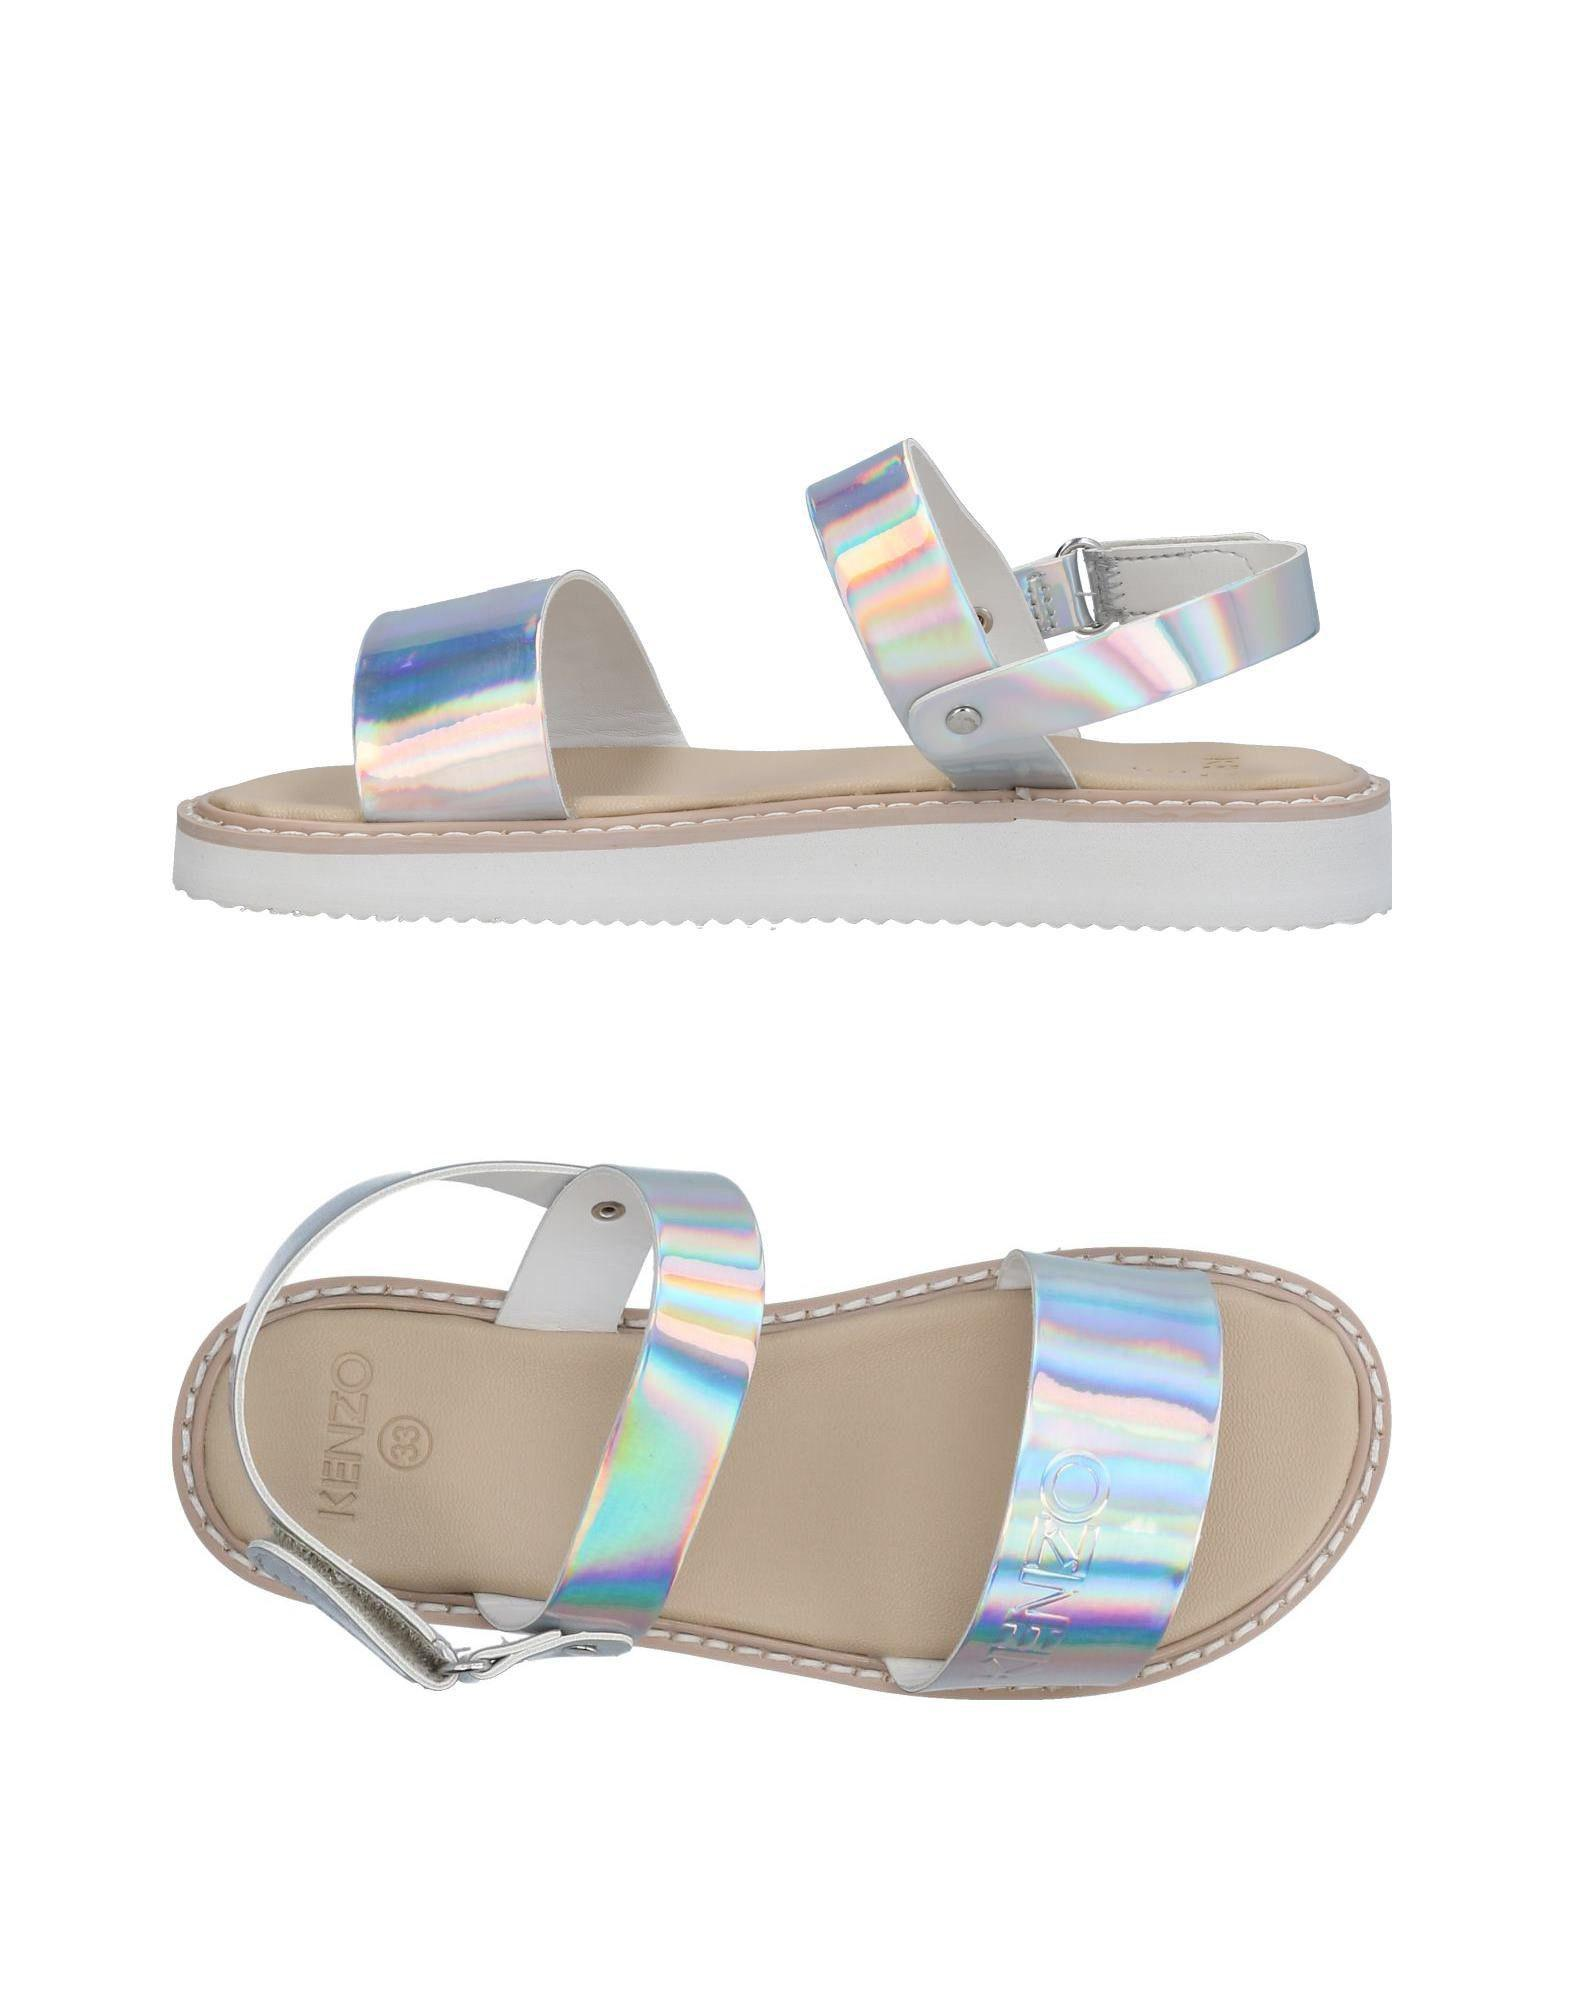 clearance store cheap online Kenzo Metallic Embossed Sandals genuine sale online outlet footaction with paypal sale online cheap sale prices 3p6lqQmfHC